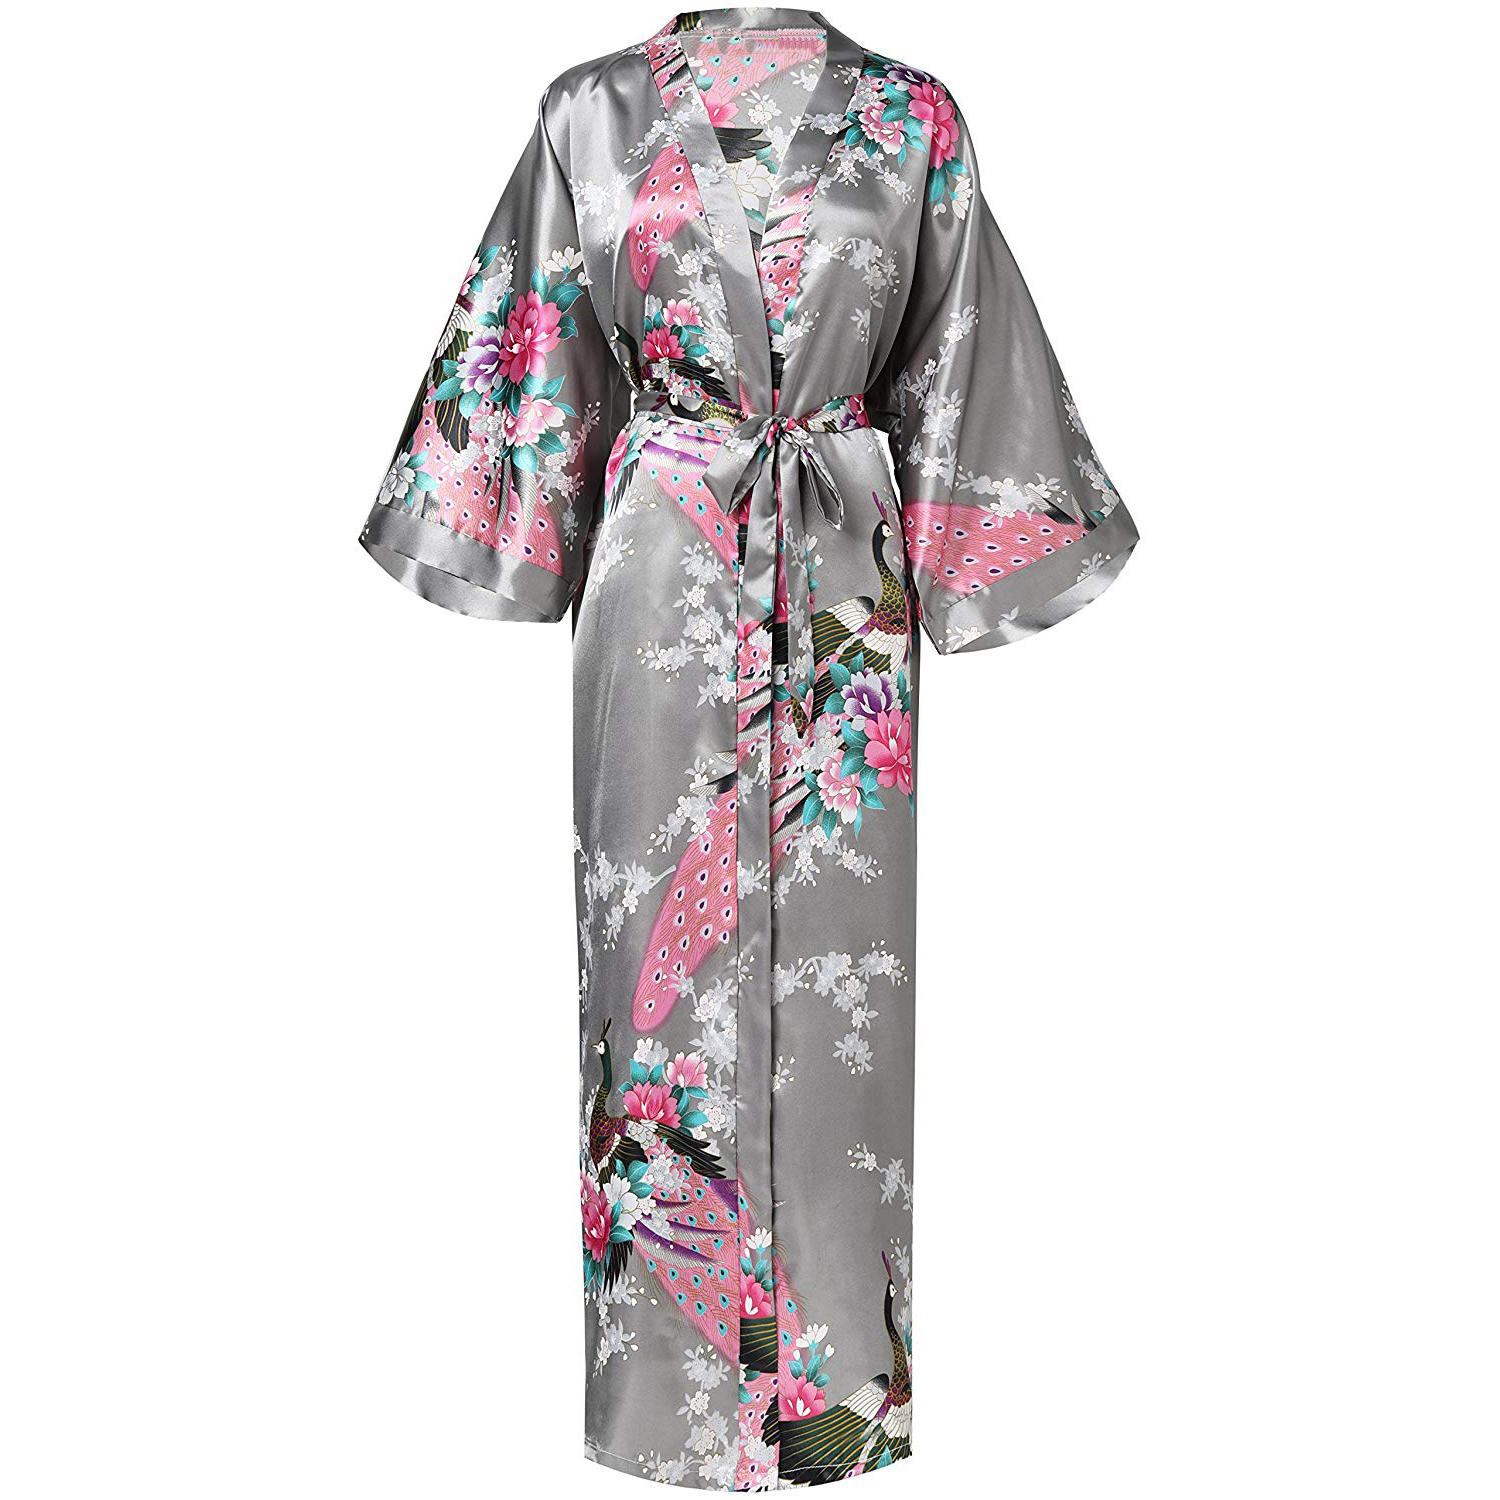 Satin Home Wear Bride Bridesmaid Wedding Robe Casual Long Nightgown Negligee Print Flower Kimono Gown Novelty Bathrobe Gown